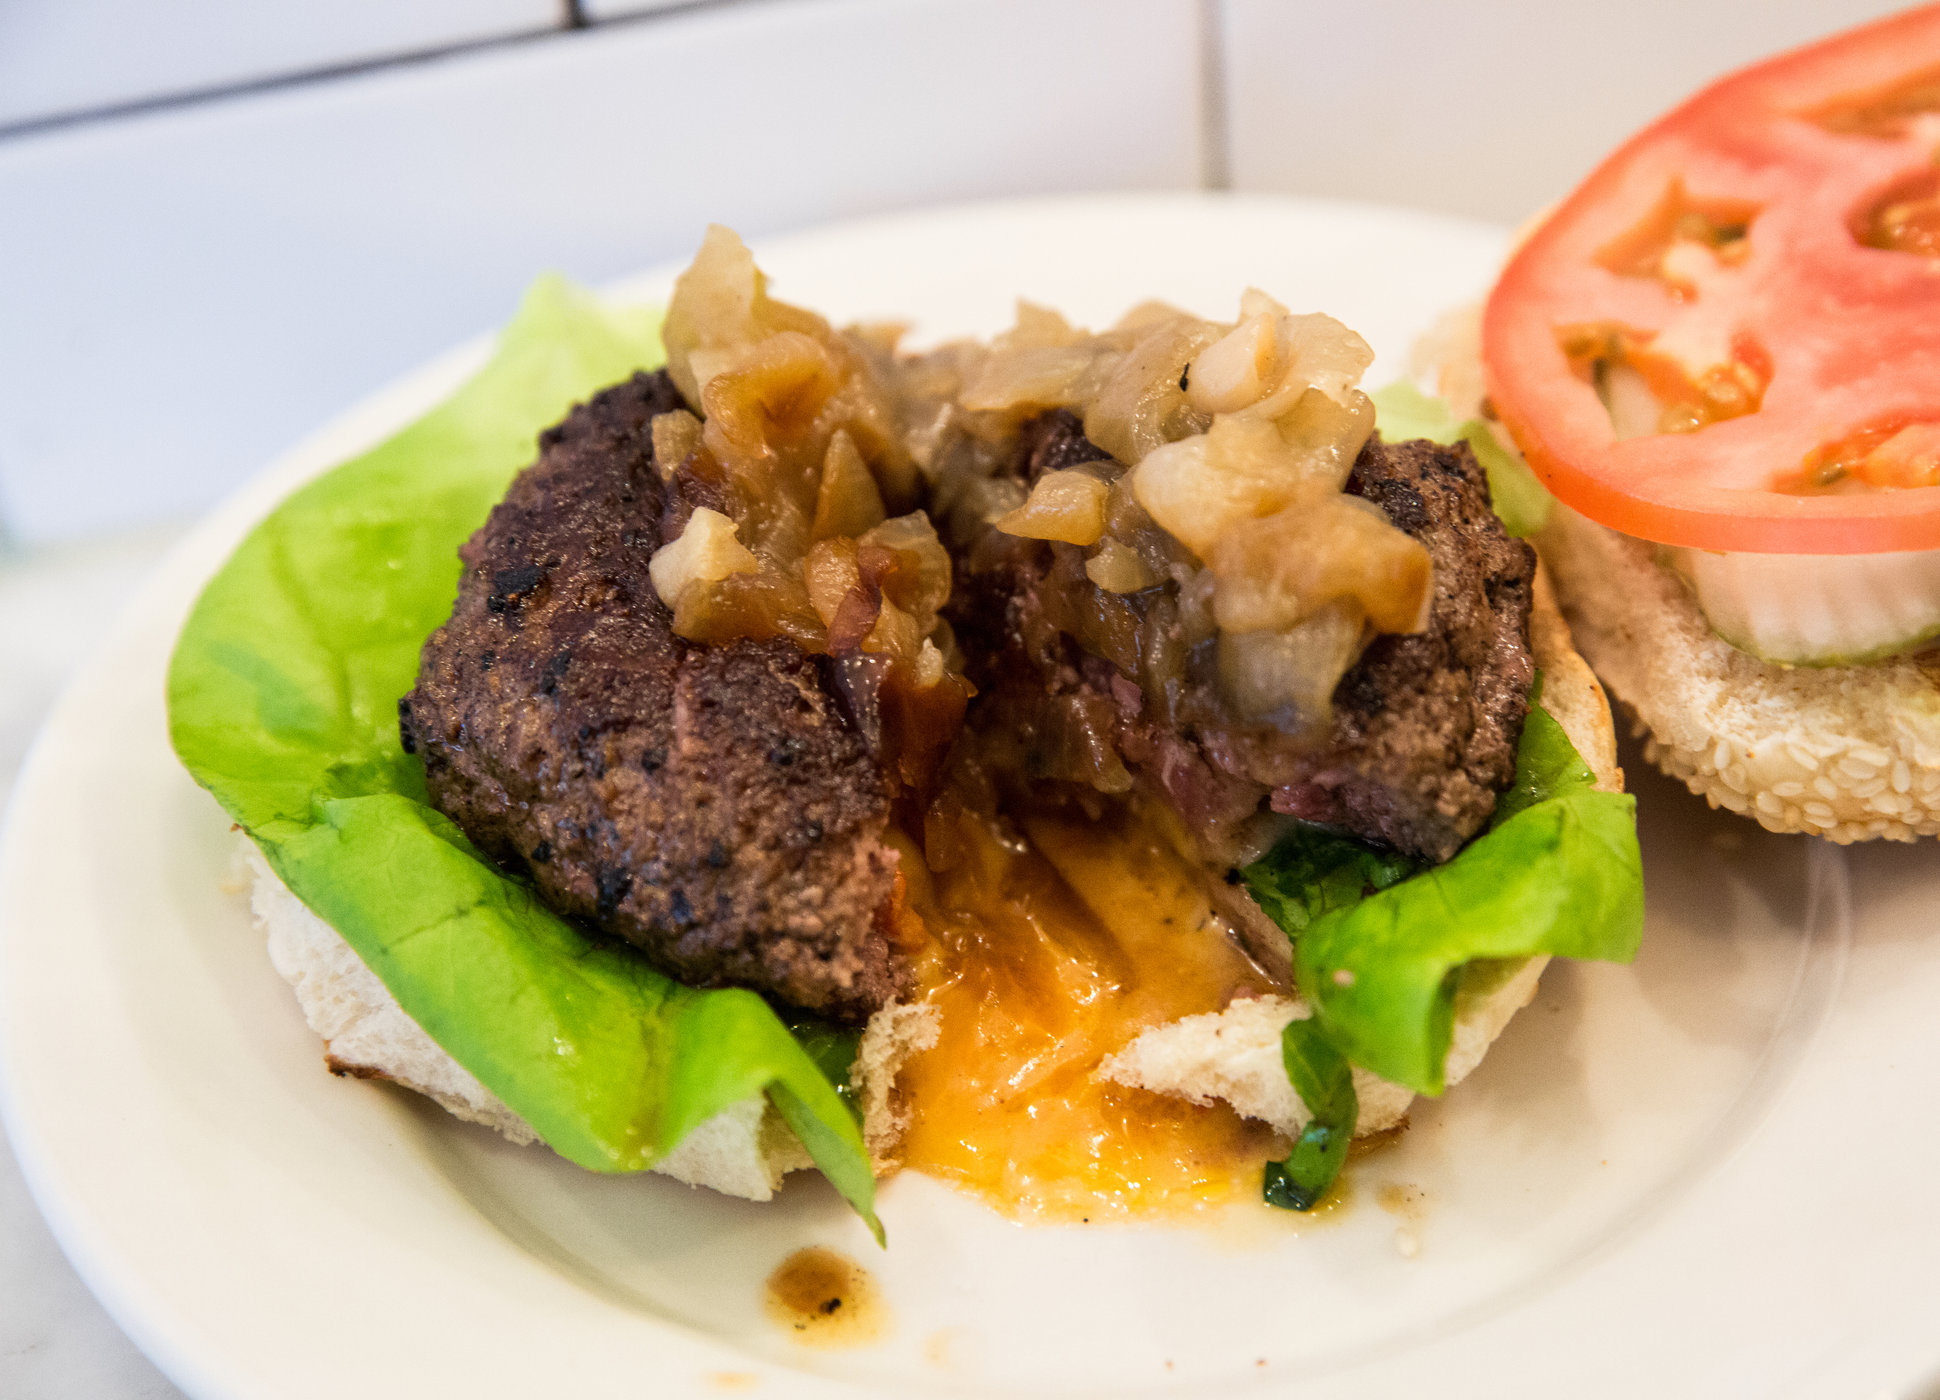 New York City's Best Burgers: The Definitive Guide - By LUCY MEILUS Updated On 03/26/2018 at 05:45PM EST@lucymeilusMinnesota's state cheeseburger has a loving home in the East Village. The beef/short rib blend featured in the Juicy Lucy at Whitmans comes stuffed with an almost overwhelming amount of pimento cheese (cut it open if you're looking for the safest, least shirt-damaging route in) plus caramelized onions and special sauce on a sesame bun. While we may not be very thankful for hockey, we should all be indebted to Minnesota for a burger that oozes this much cheese.Read on Thrillist